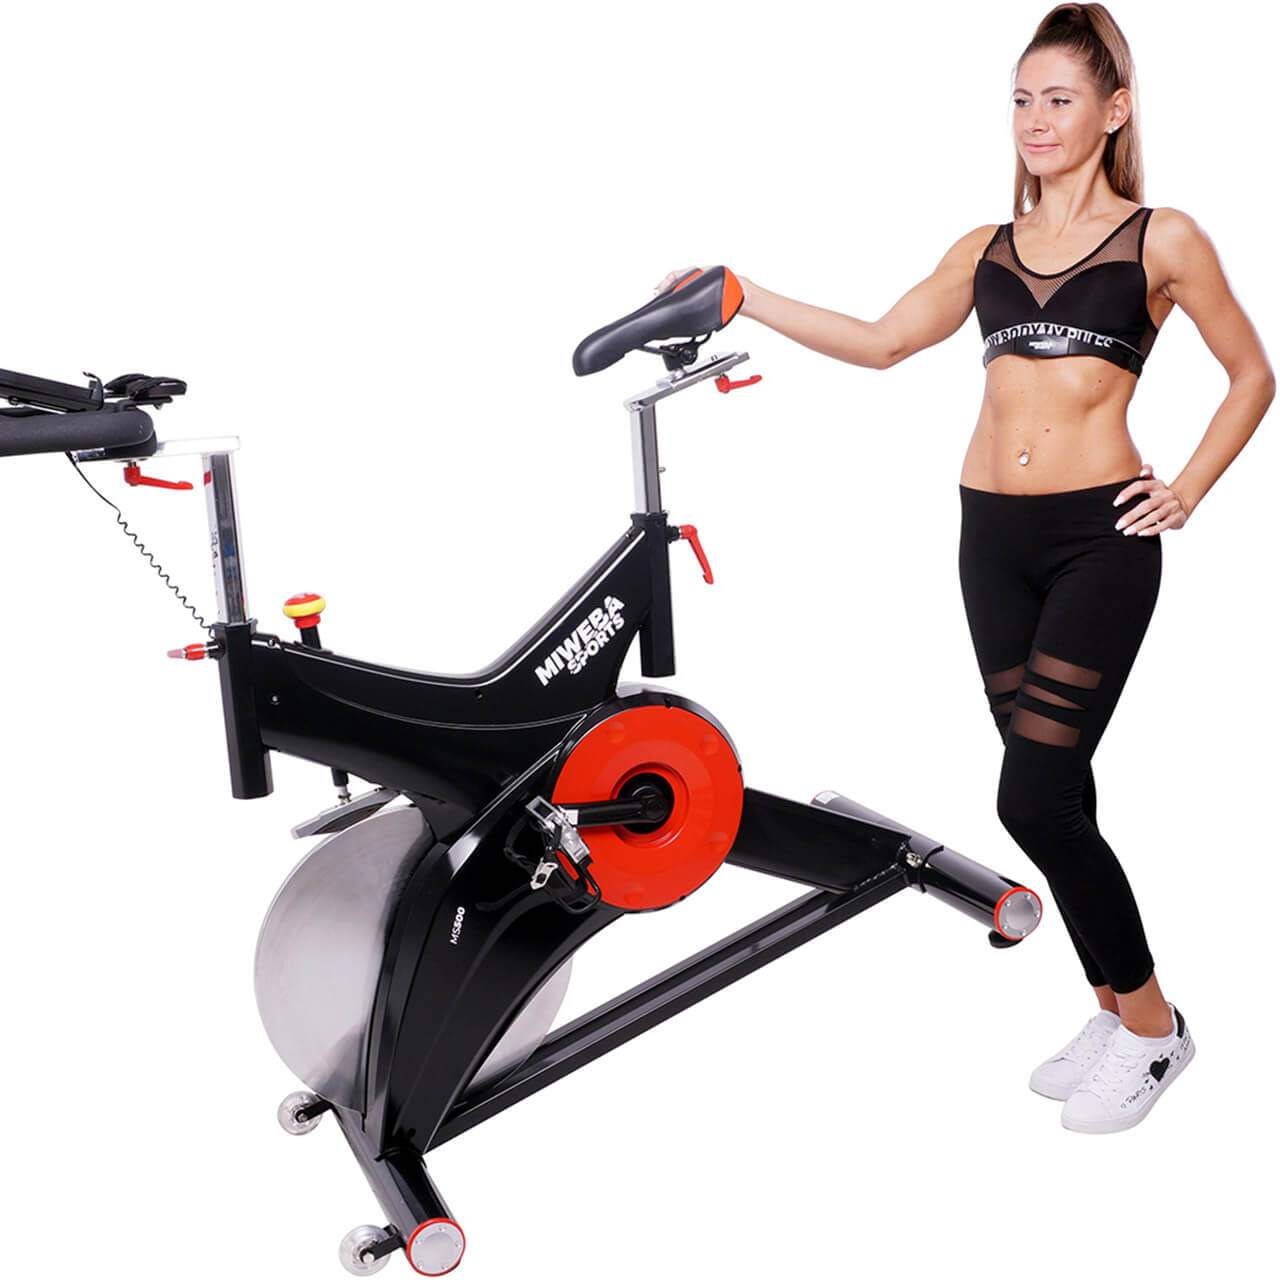 Miweba Sports Fitnessbike MS500